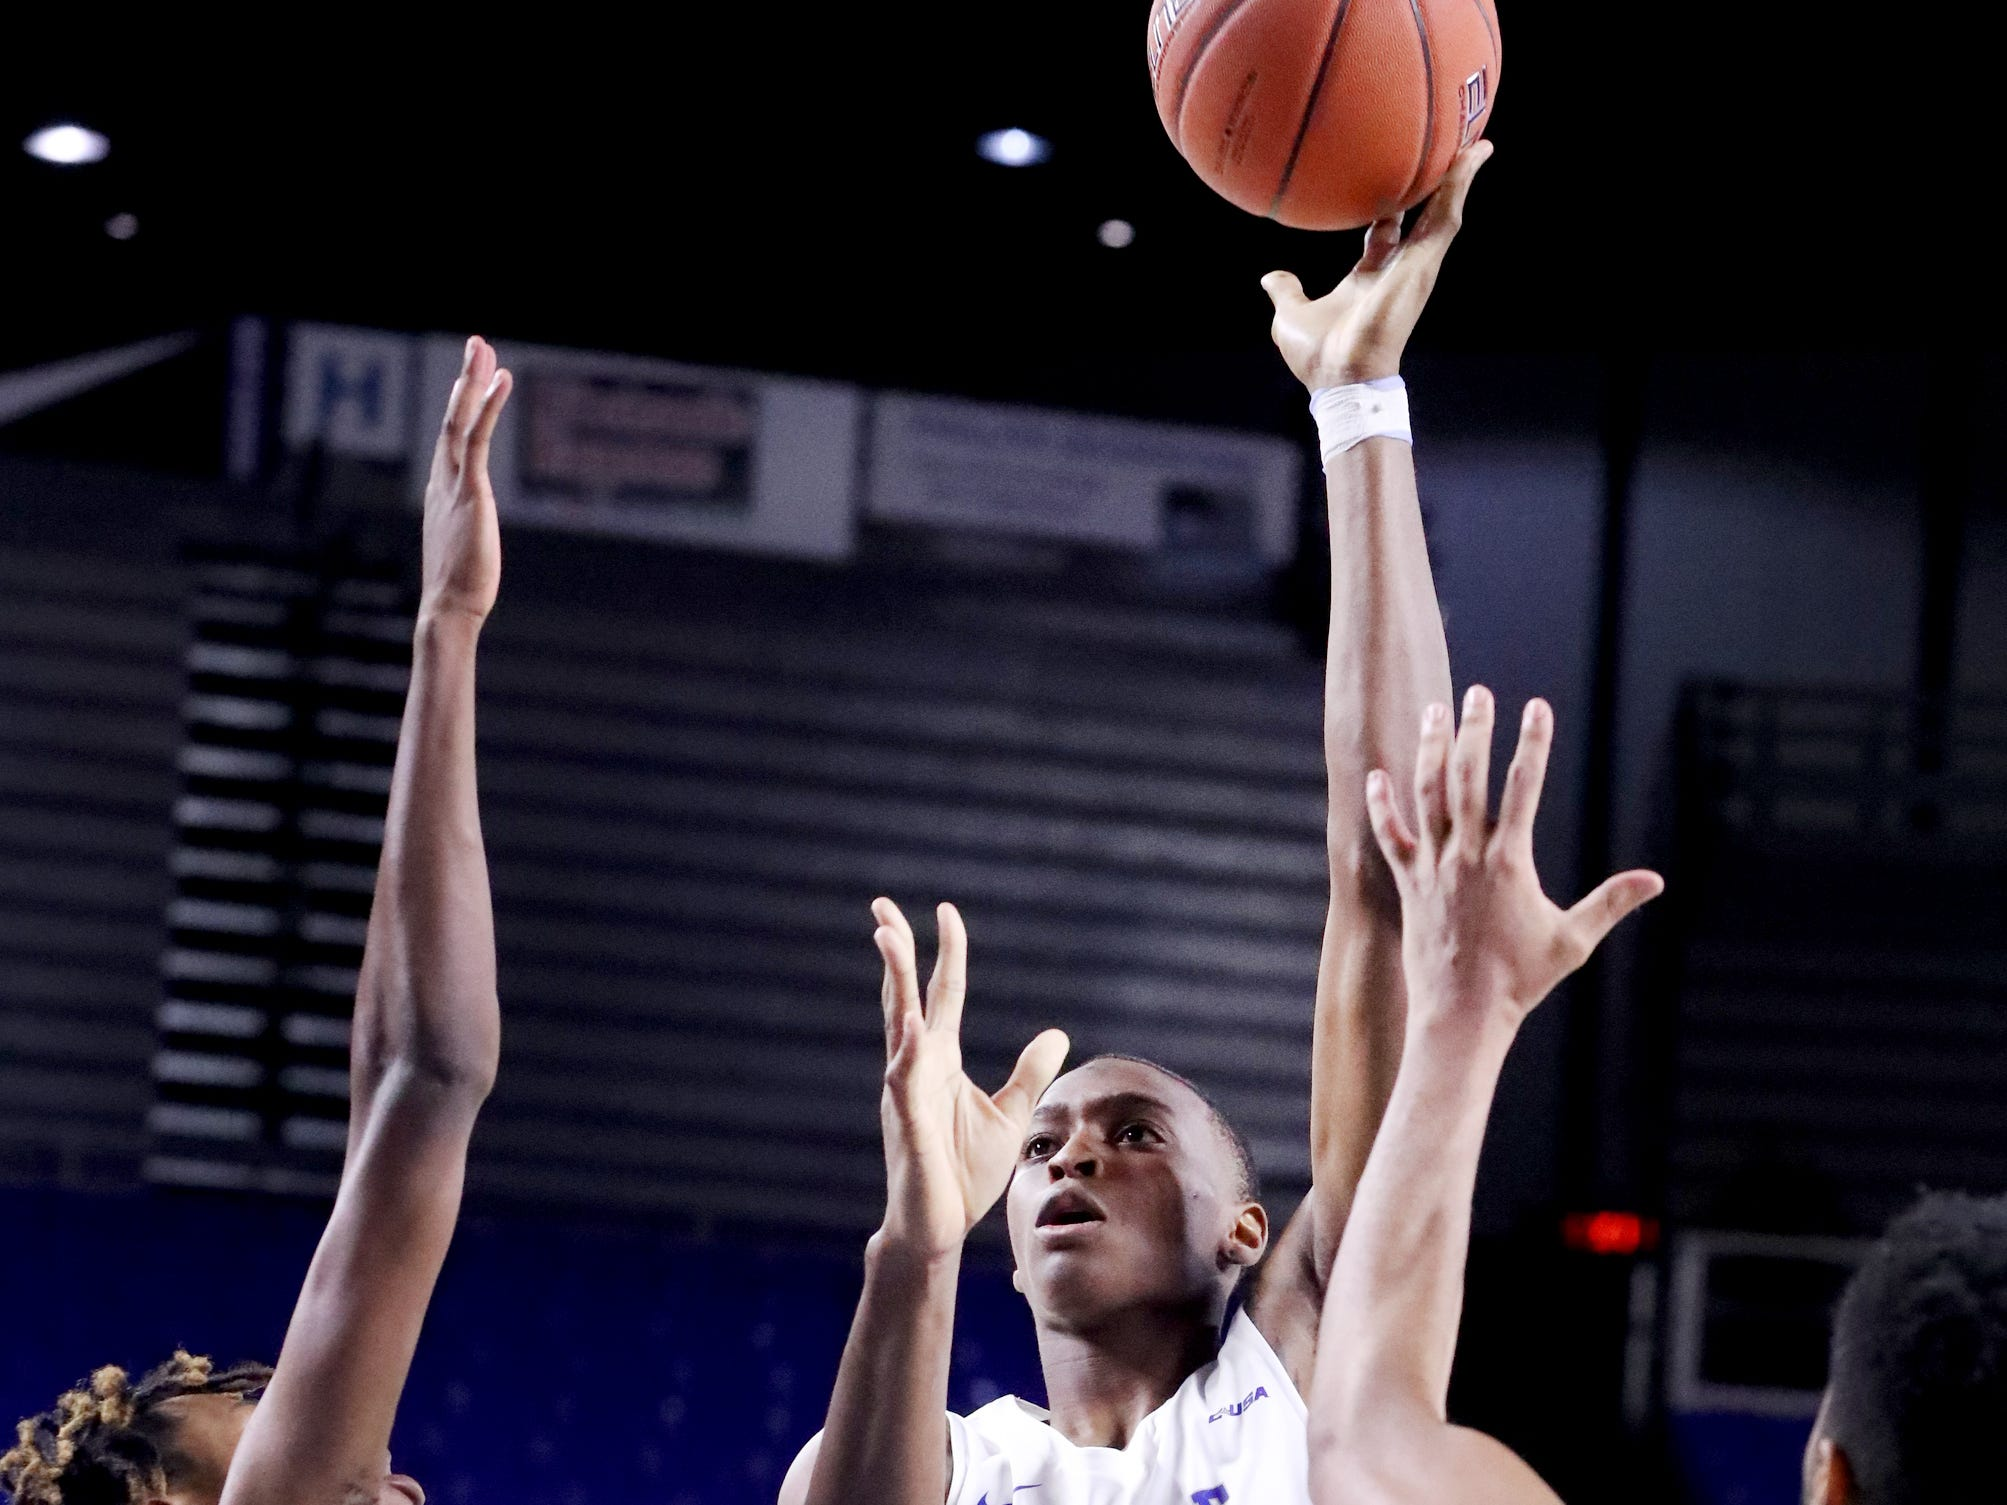 MTSU's Karl Gamble (25) goes up for a shot against Lees-McRae on Tuesday, Nov. 6, 2018.